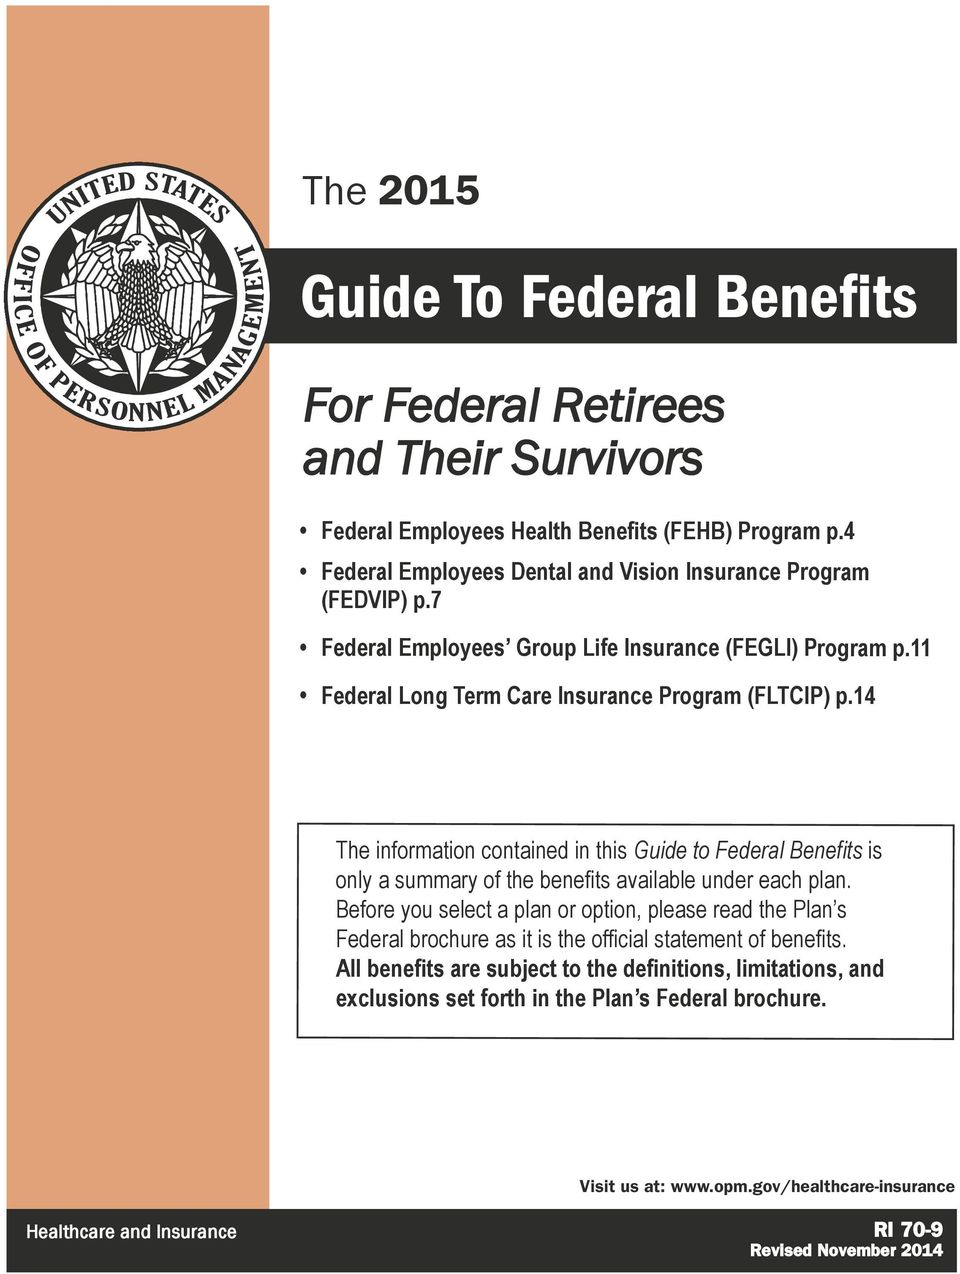 14 The information contained in this Guide to Federal Benefits is a summary of the benefits available under each plan.